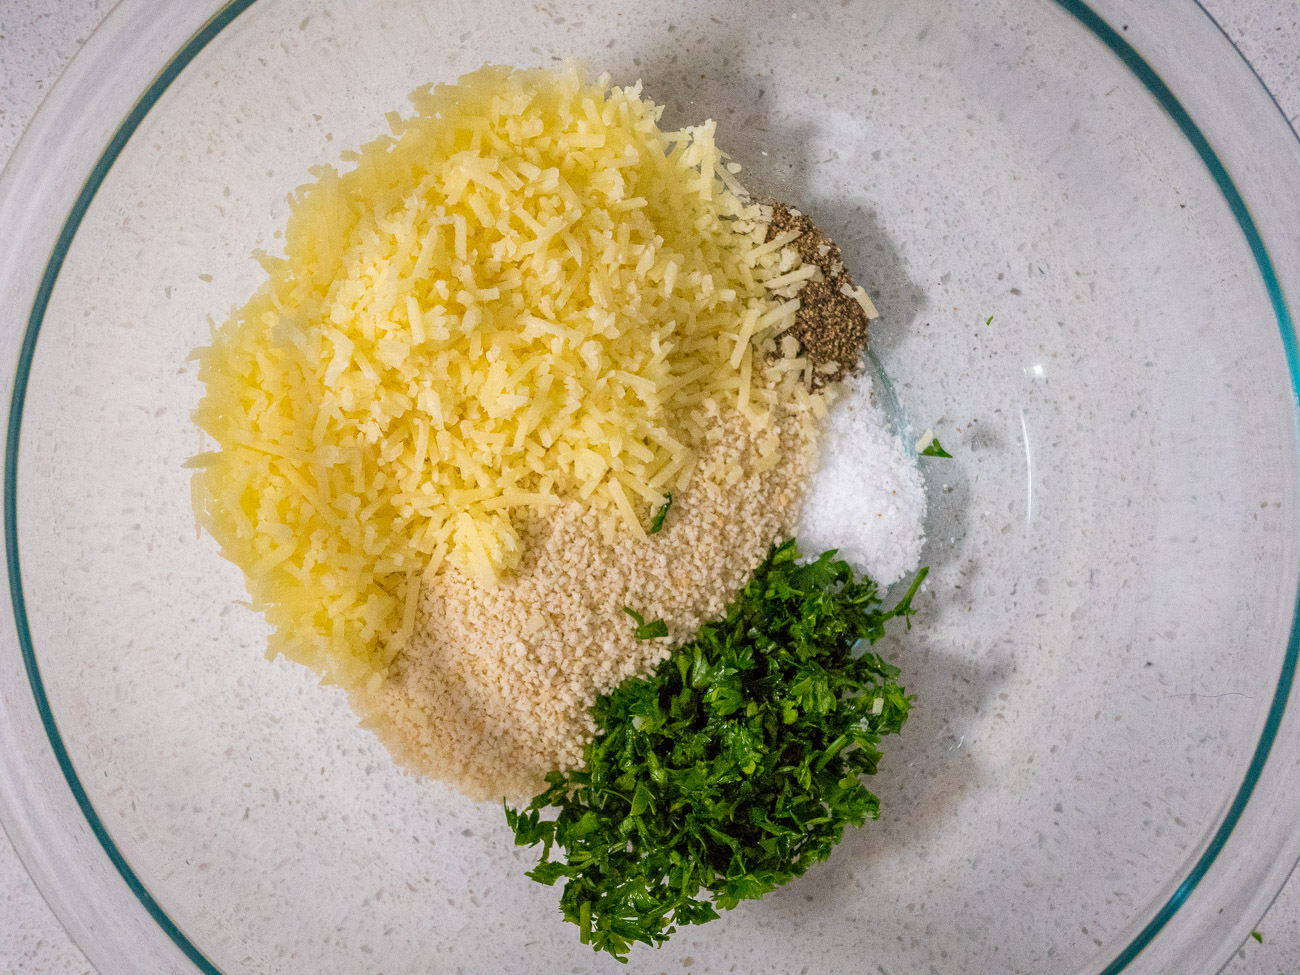 In a small bowl combine bread crumbs, cheeses, parsley, salt, pepper. Preheat oven to 350˚.